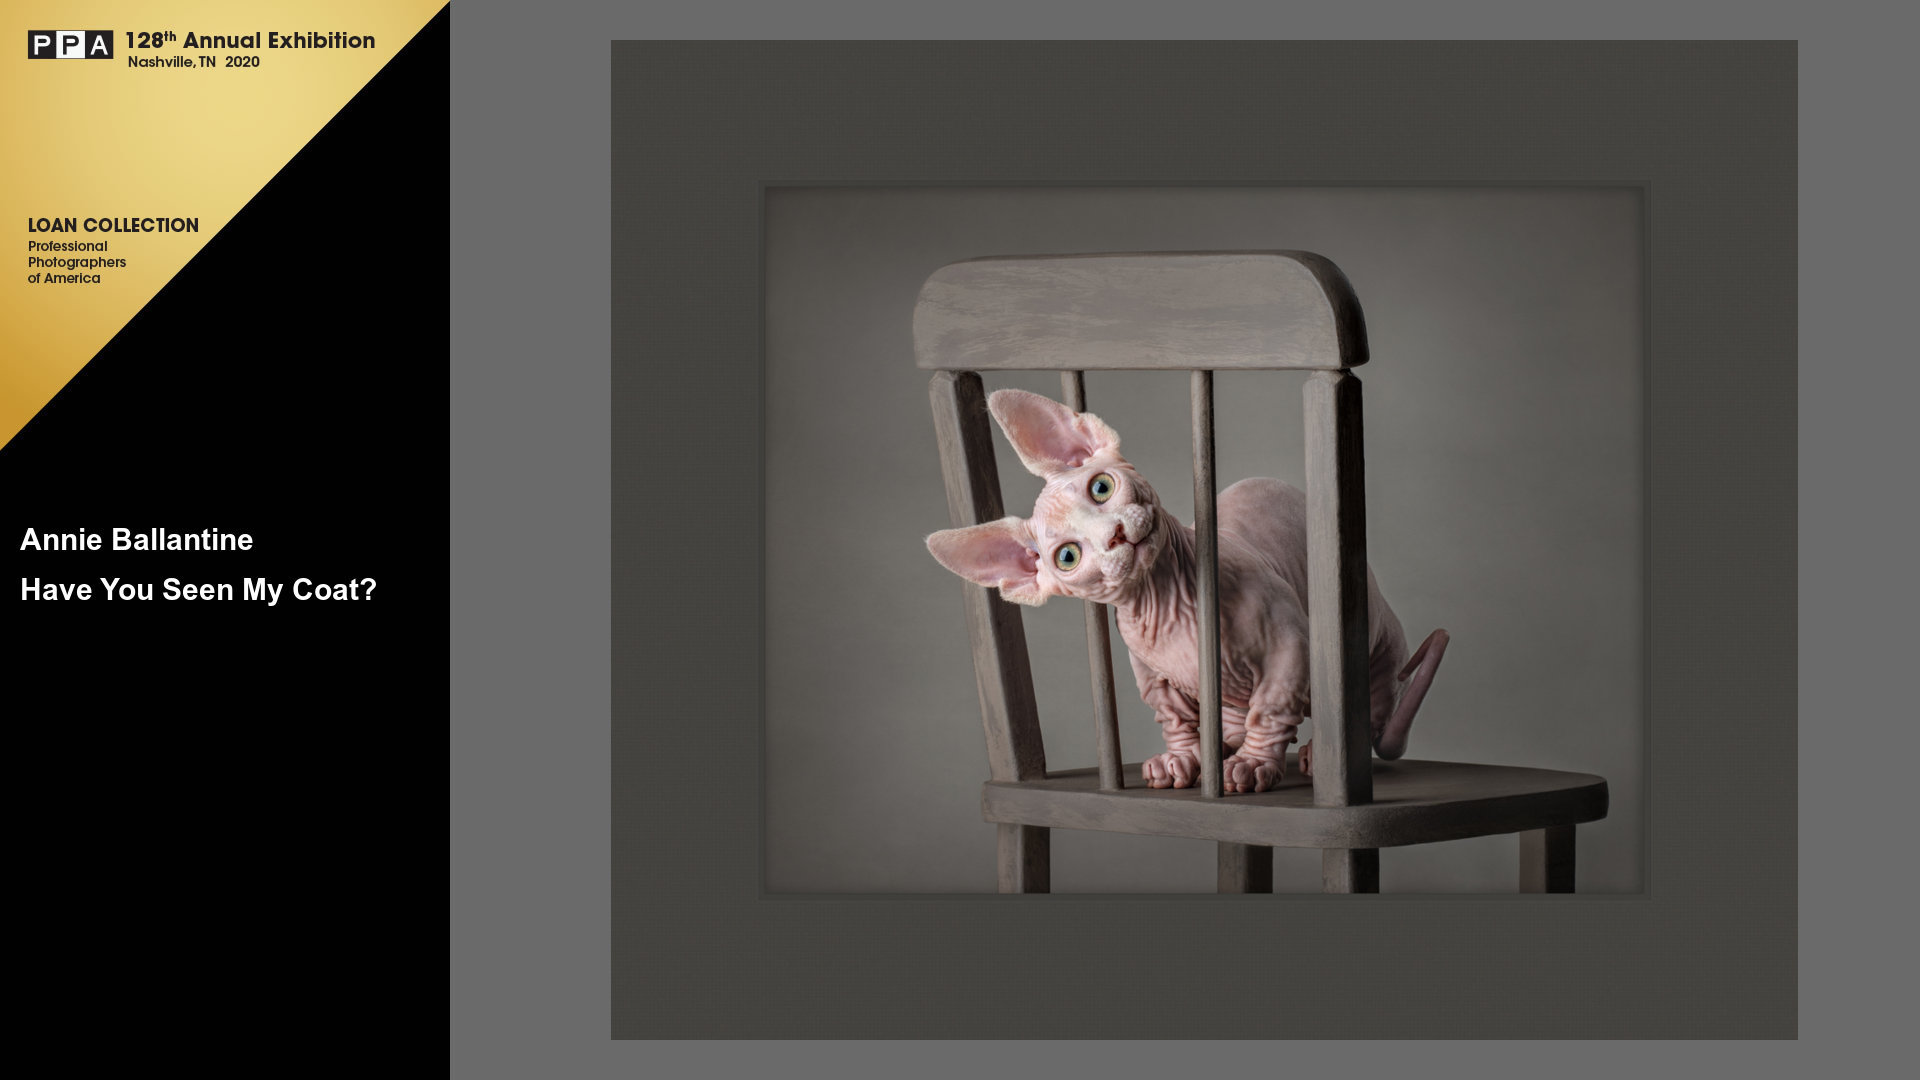 ipc-loan-image-hairless-cat